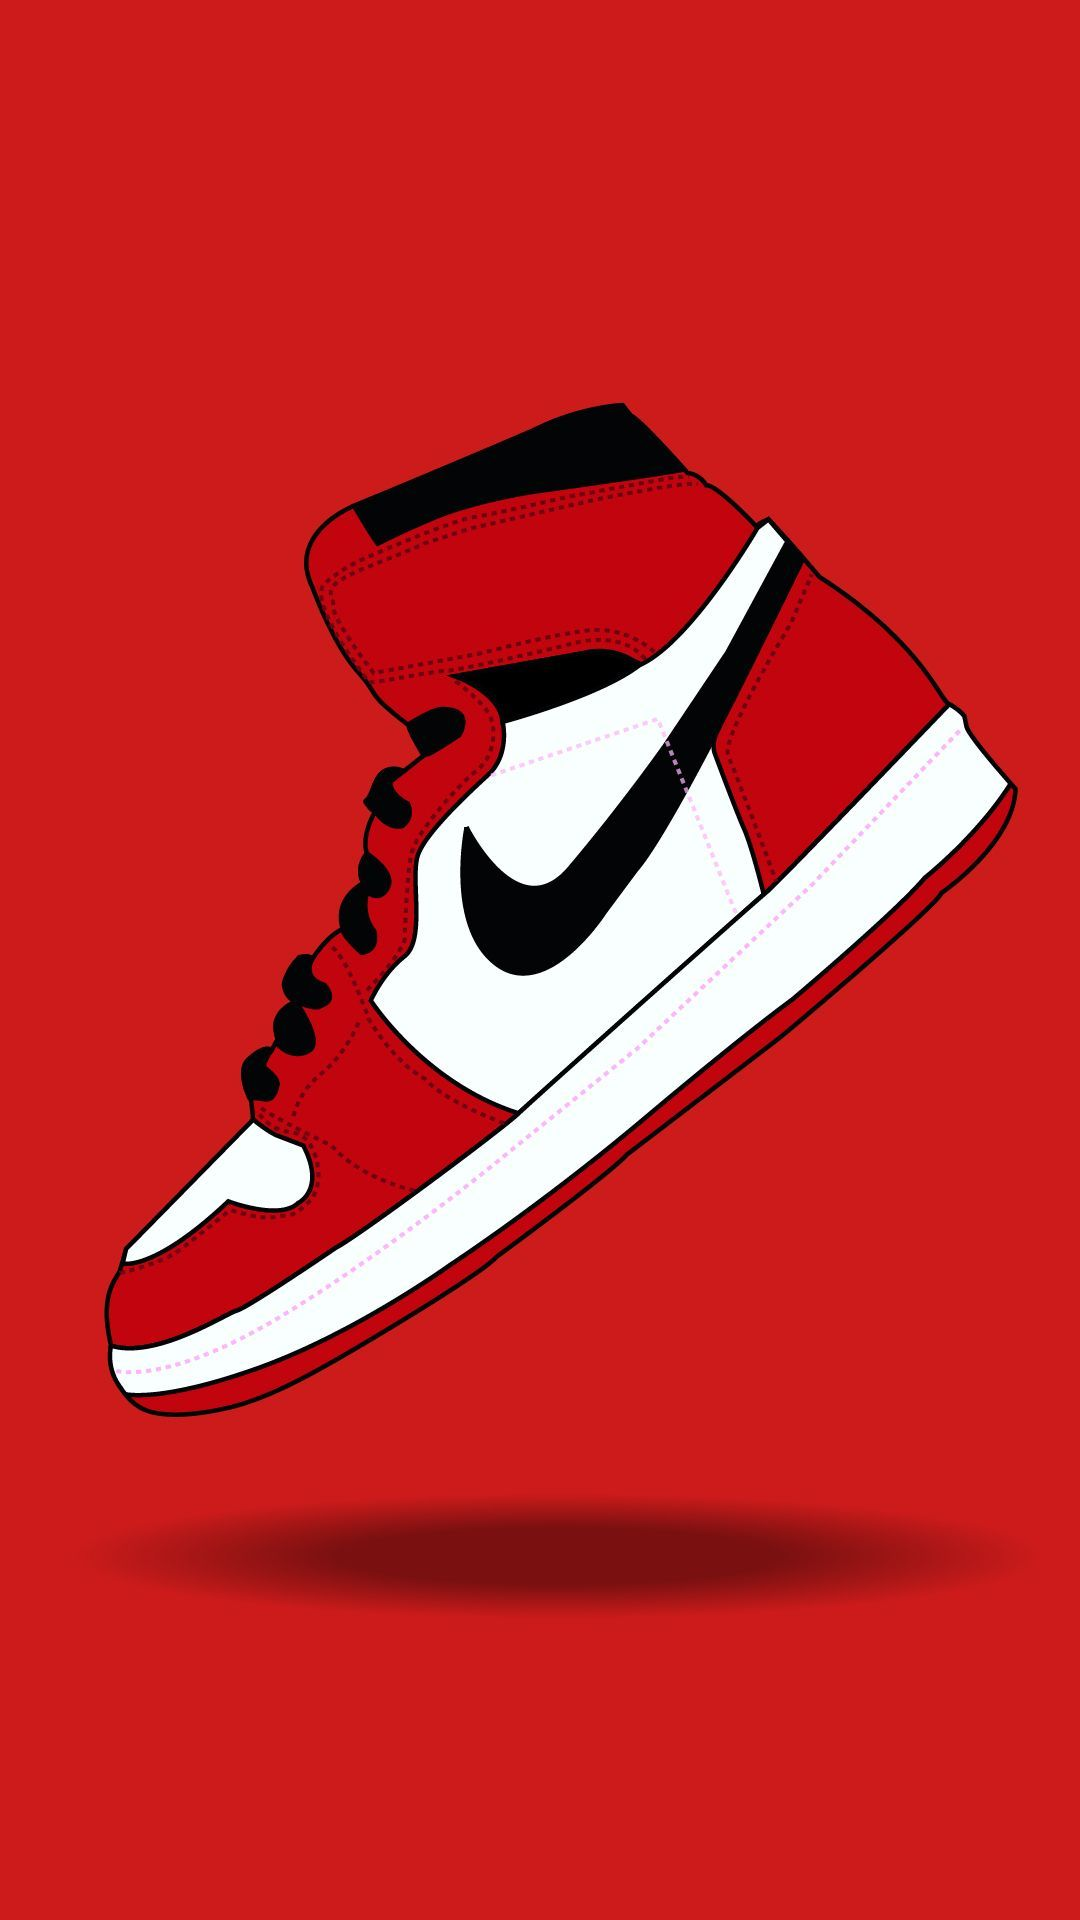 Nike Red Phone Wallpaper Nike Wallpaper Sneakers Wallpaper Jordan Shoes Wallpaper